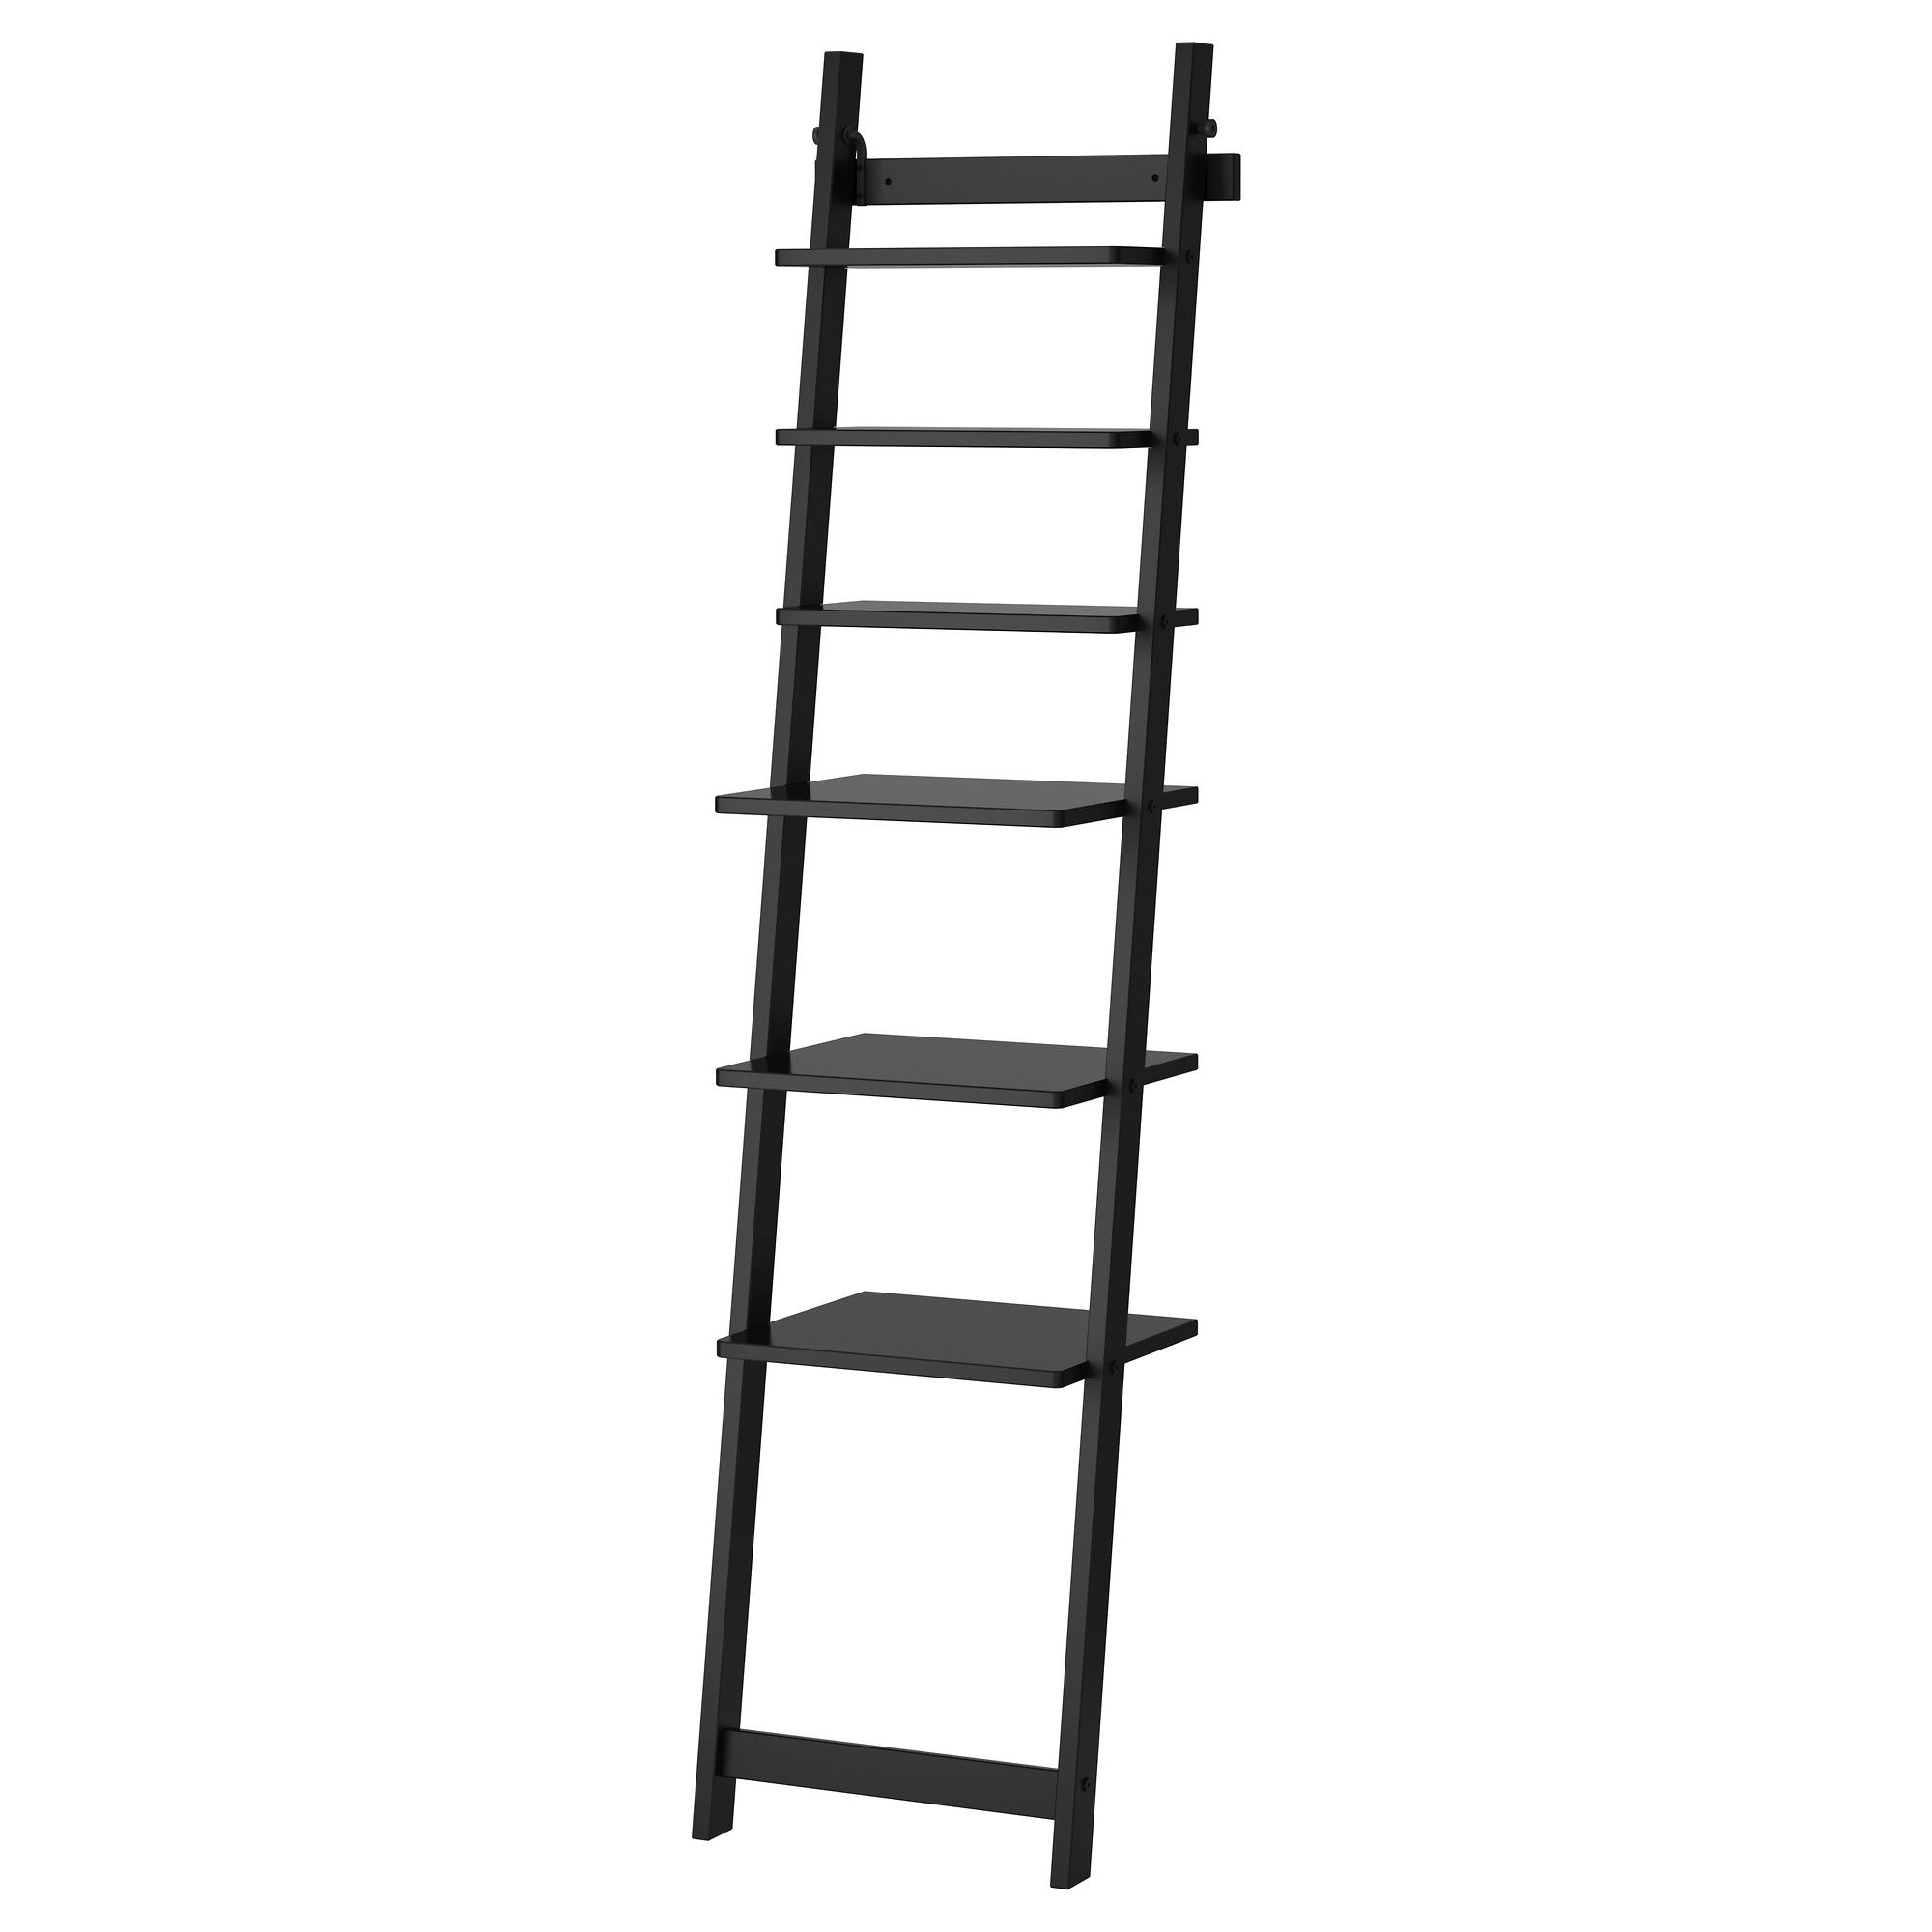 HJLMAREN Estante de pared - negro-marrn - IKEA